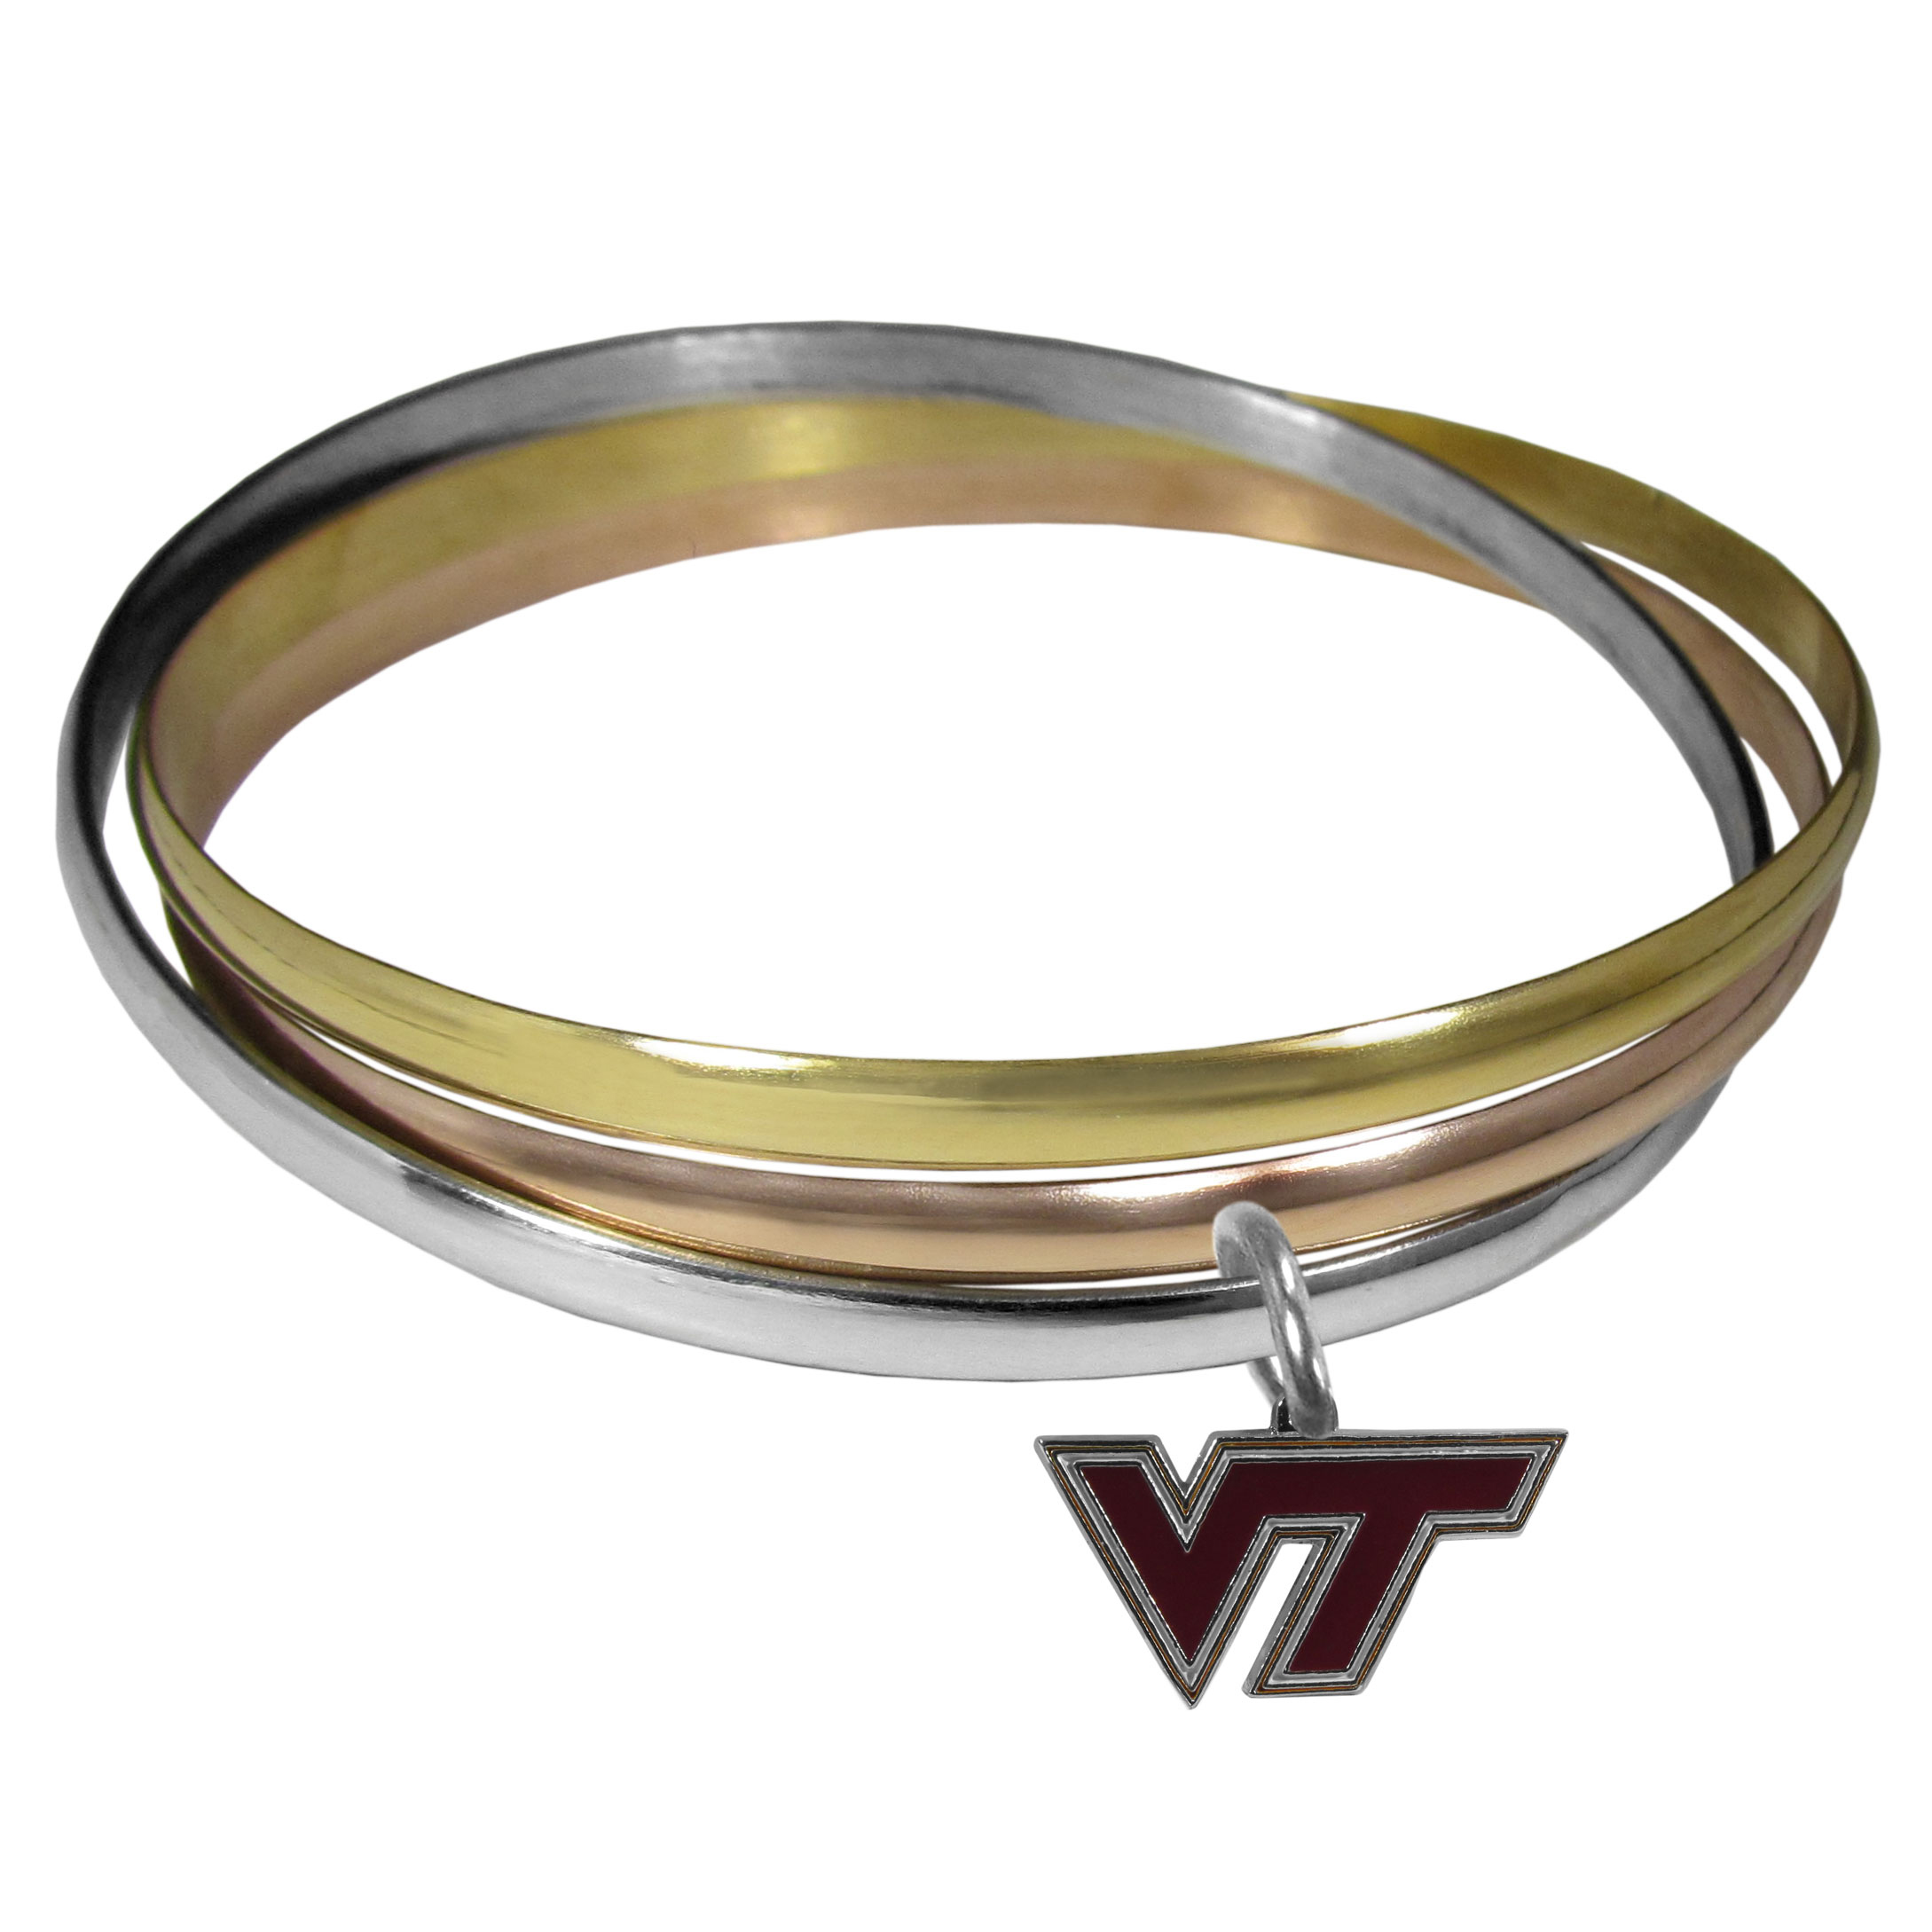 Virginia Tech Hokies Tri-color Bangle Bracelet - These beautiful bangles come in a interlocking style and feature a fully cast Virginia Tech Hokies charm with enameled team colors. The bracelet has a silver toned bangle, gold tone bangle and brass toned bangle.